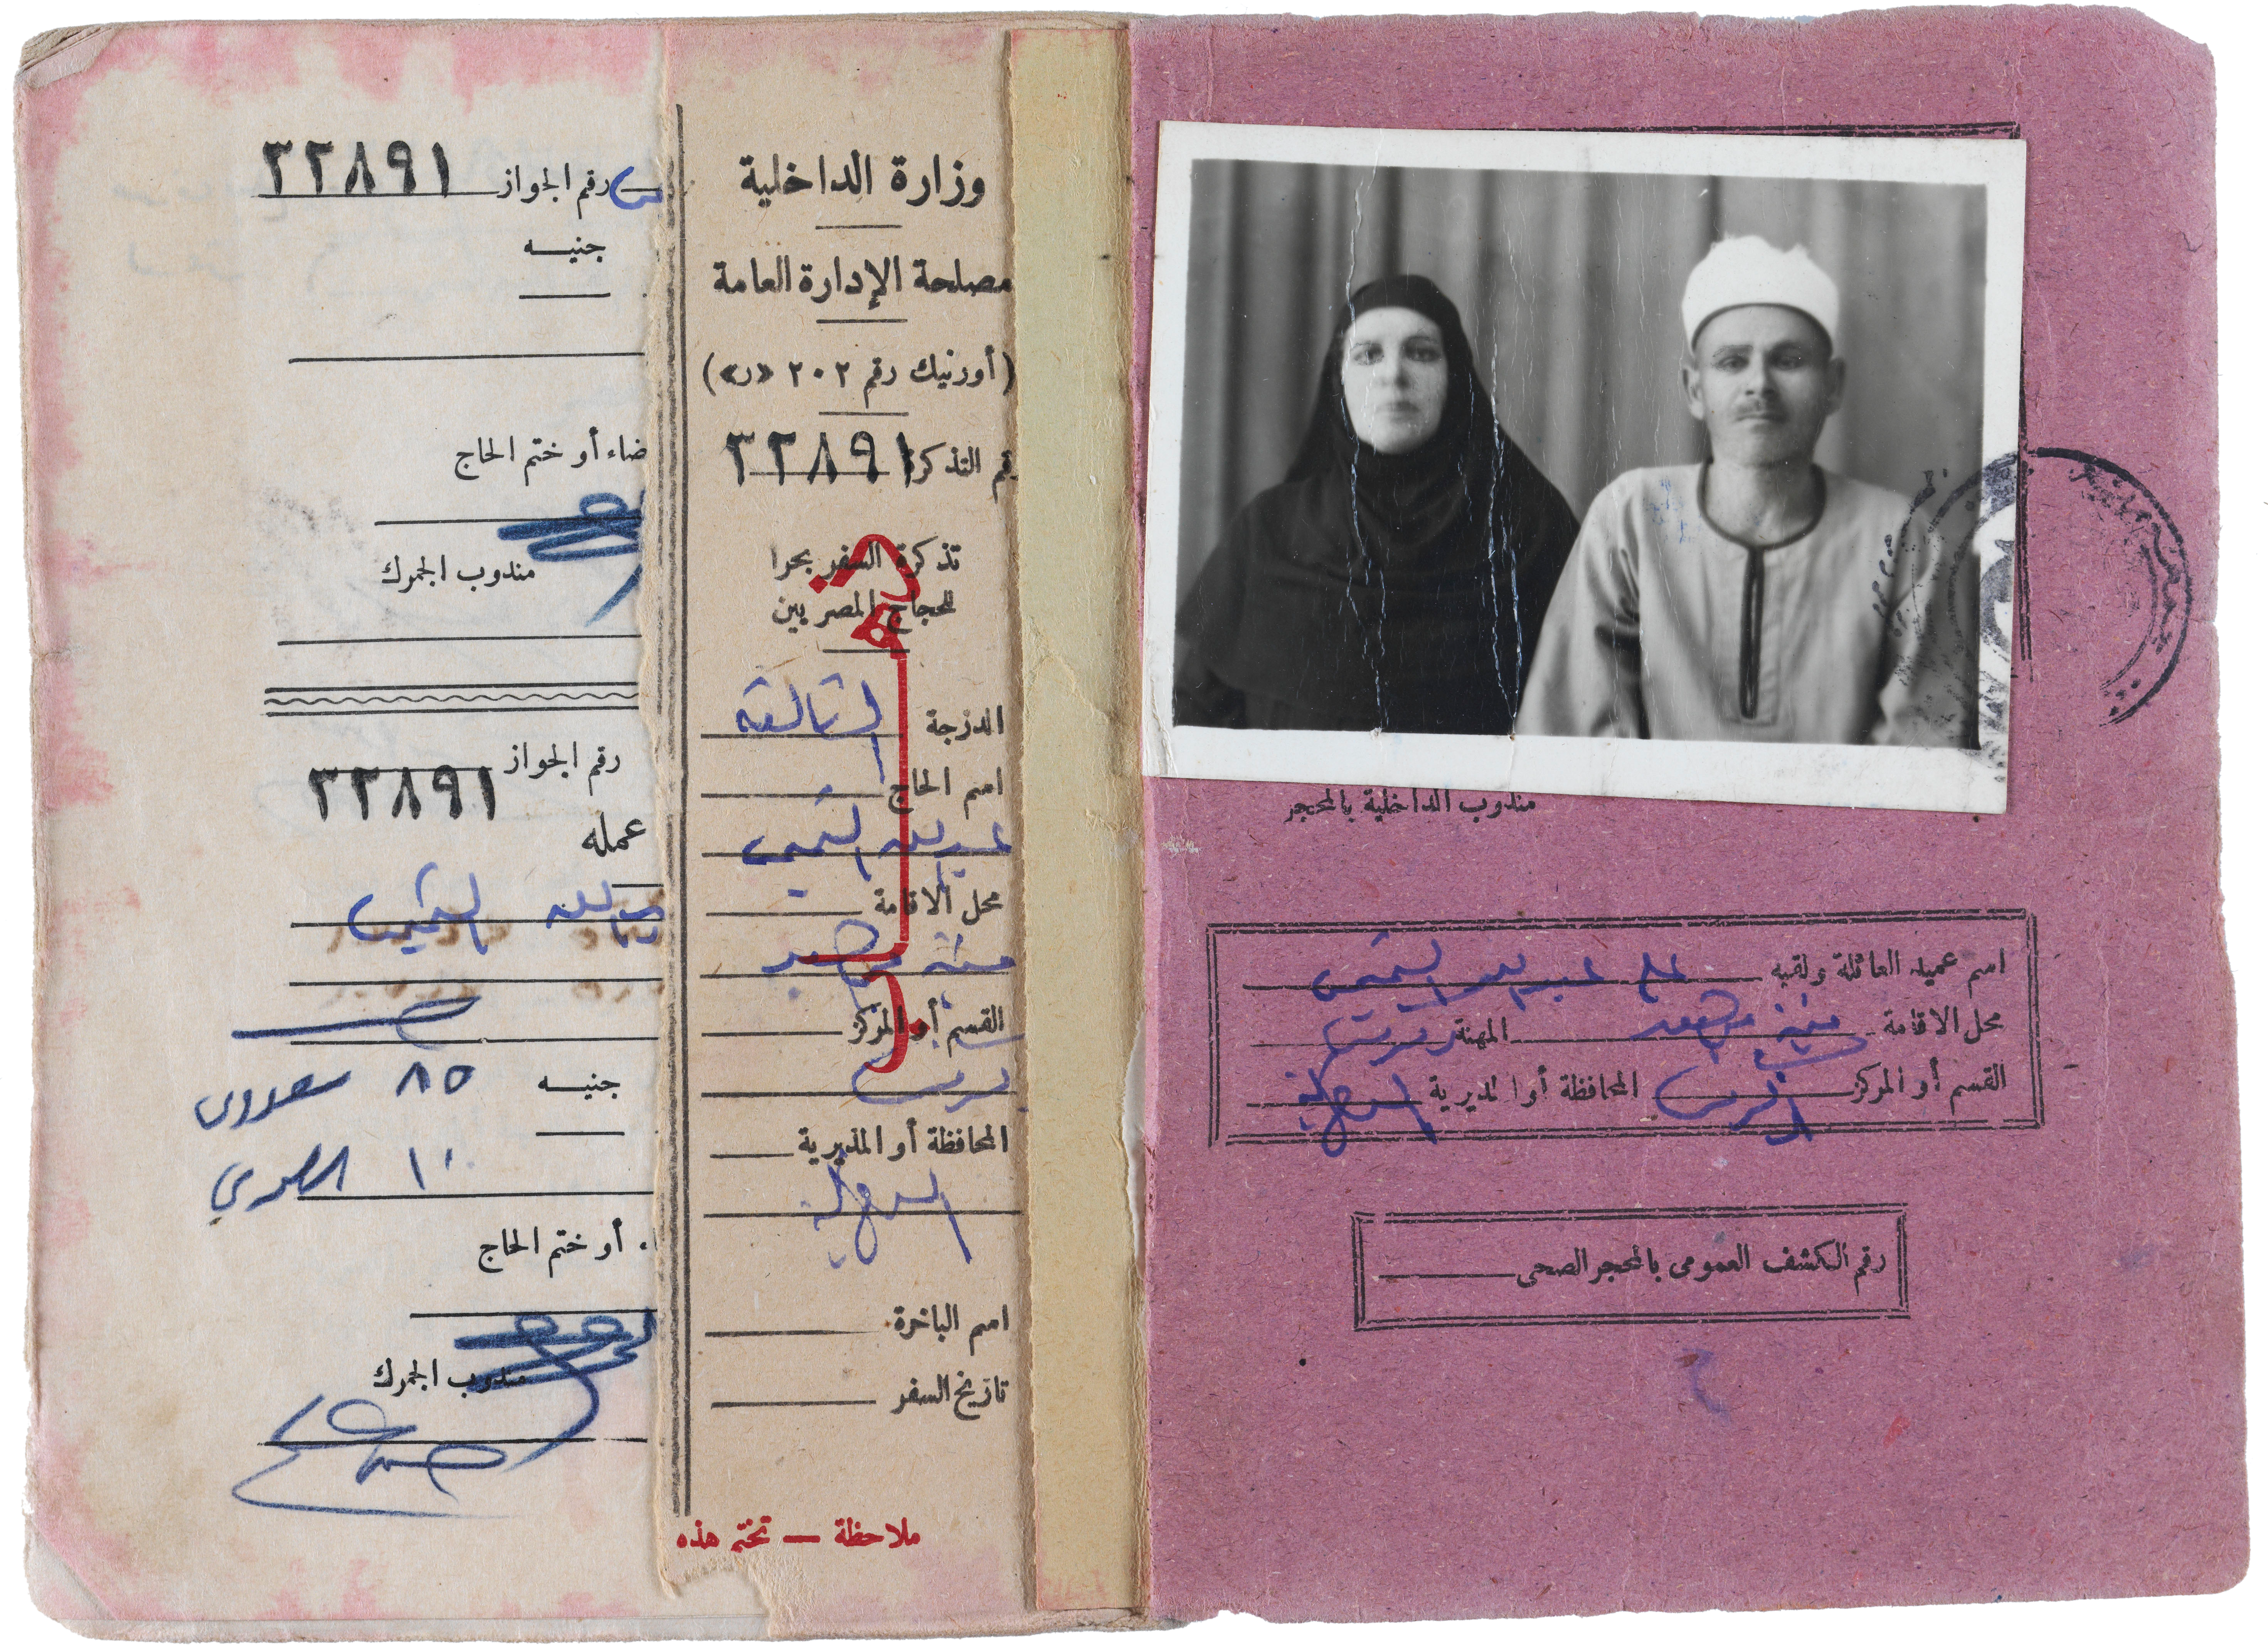 Egyptian Family Passport, for pilgrims travelling by sea, for pilgrimage to Mecca